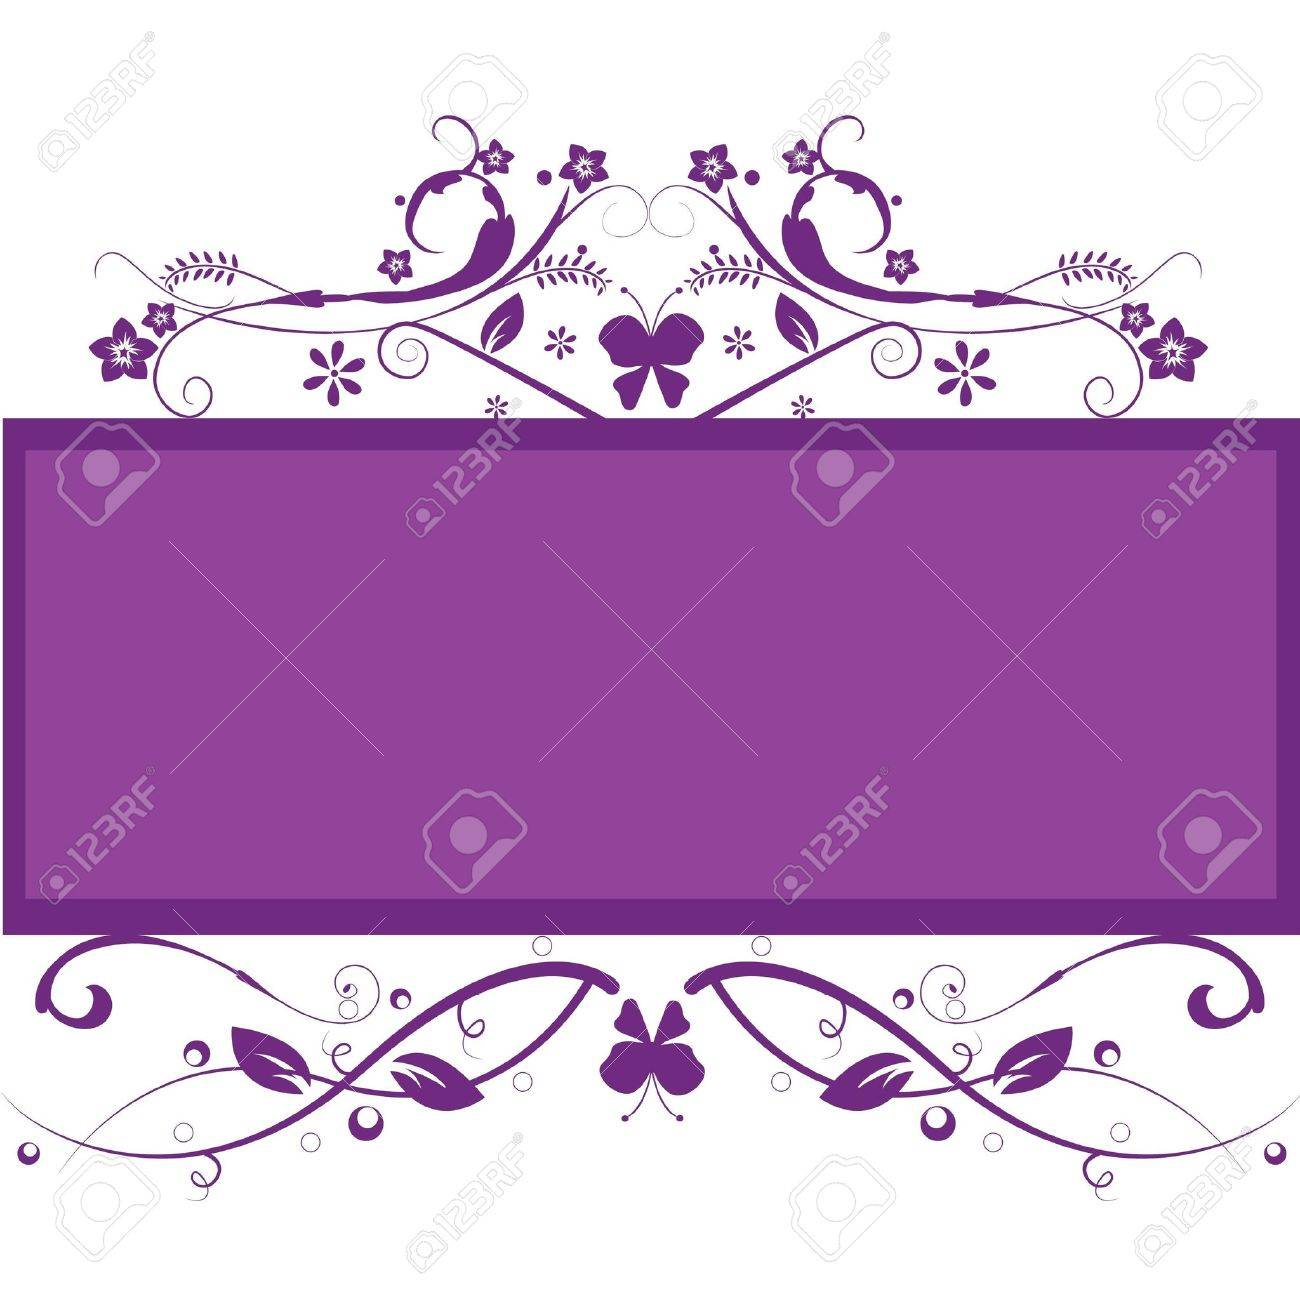 floral pattern for wallpaper, templates and greeting card Stock Photo - 7754844